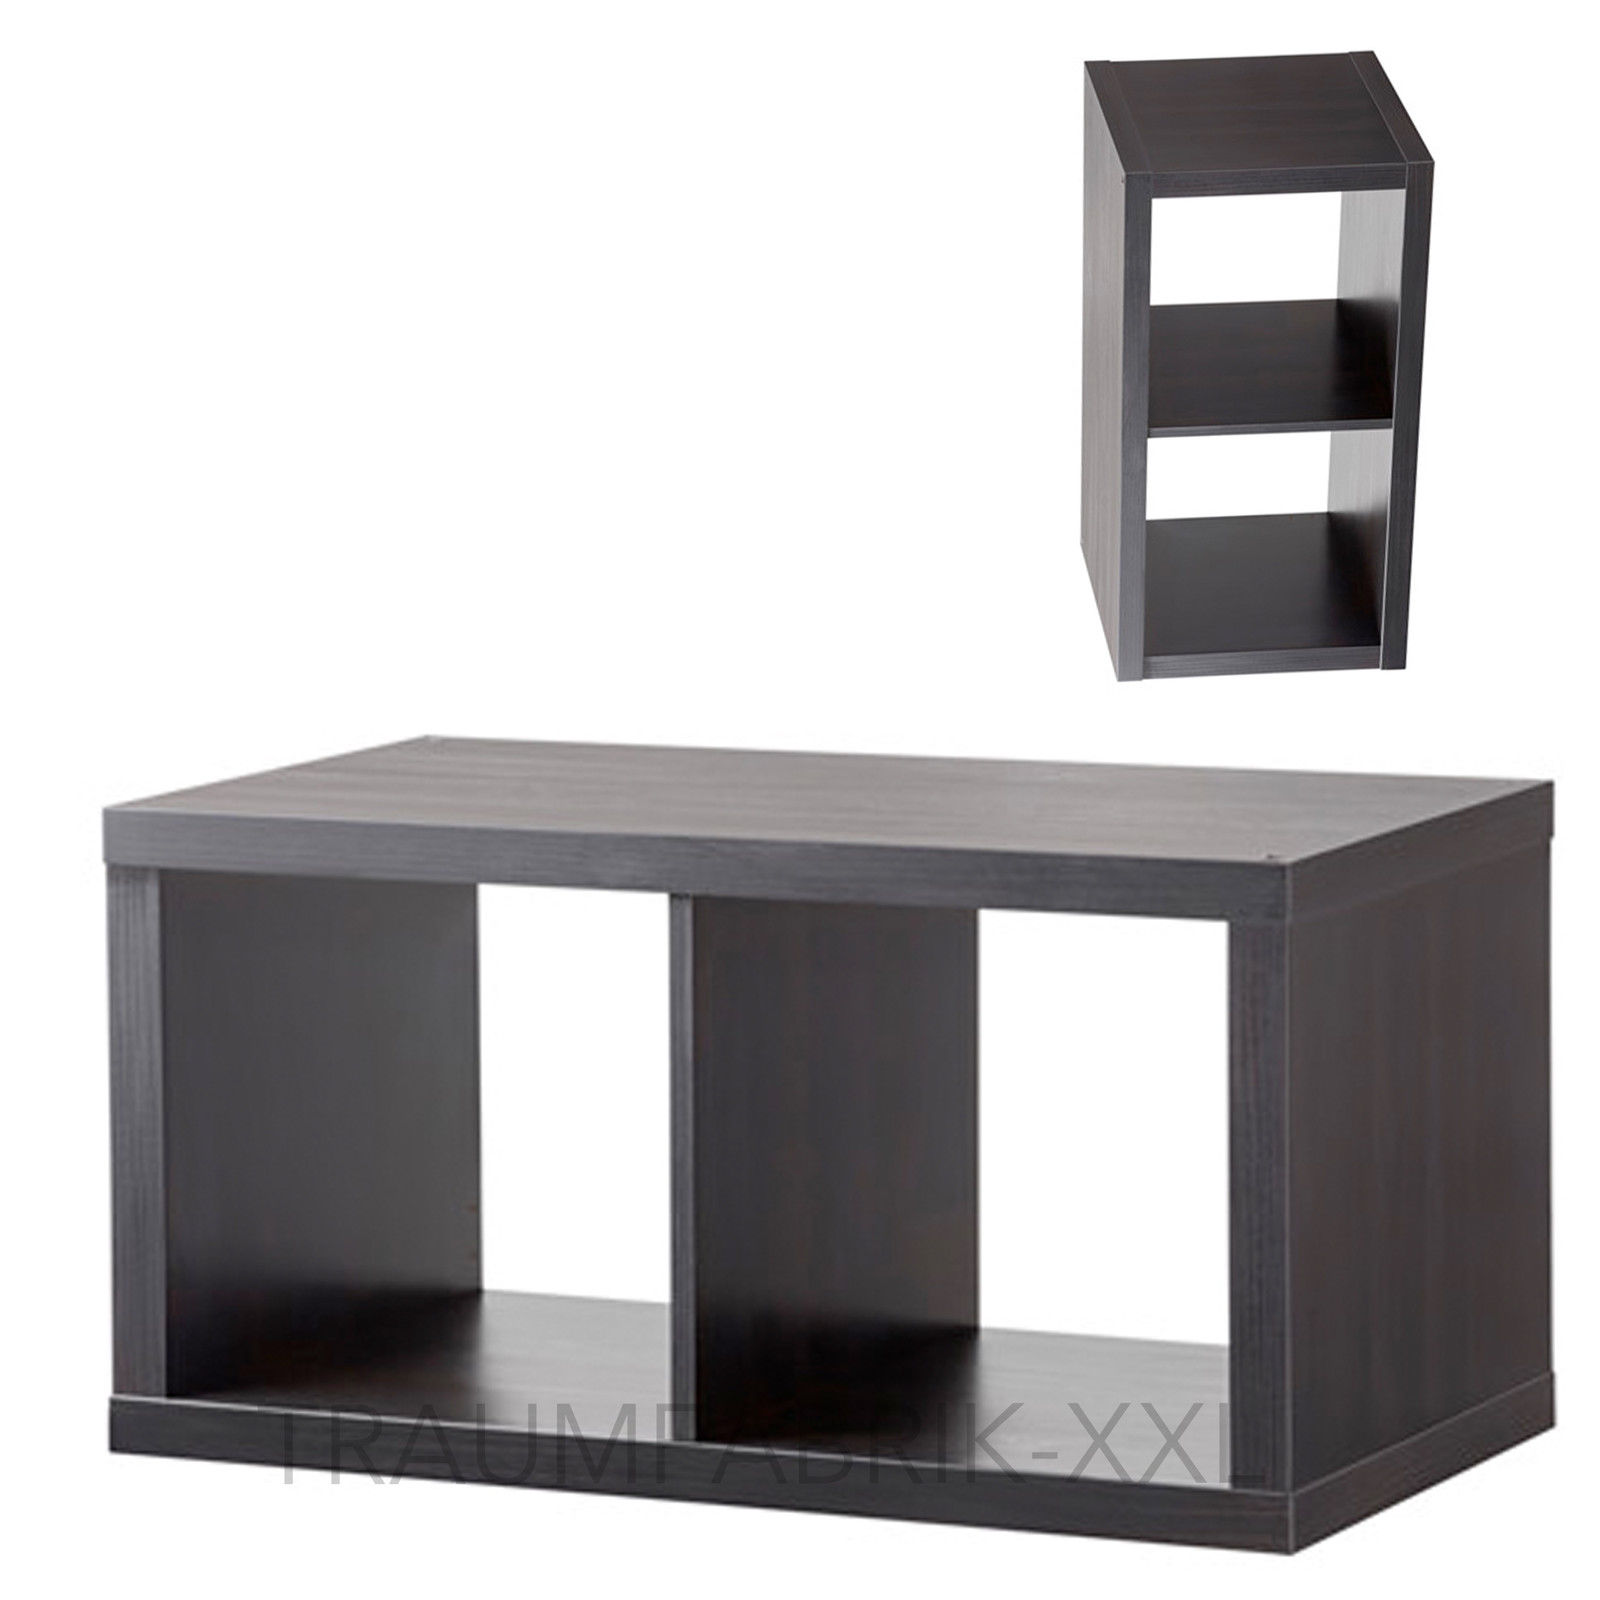 ikea wandregal regal 77cm standregal b cherregal. Black Bedroom Furniture Sets. Home Design Ideas